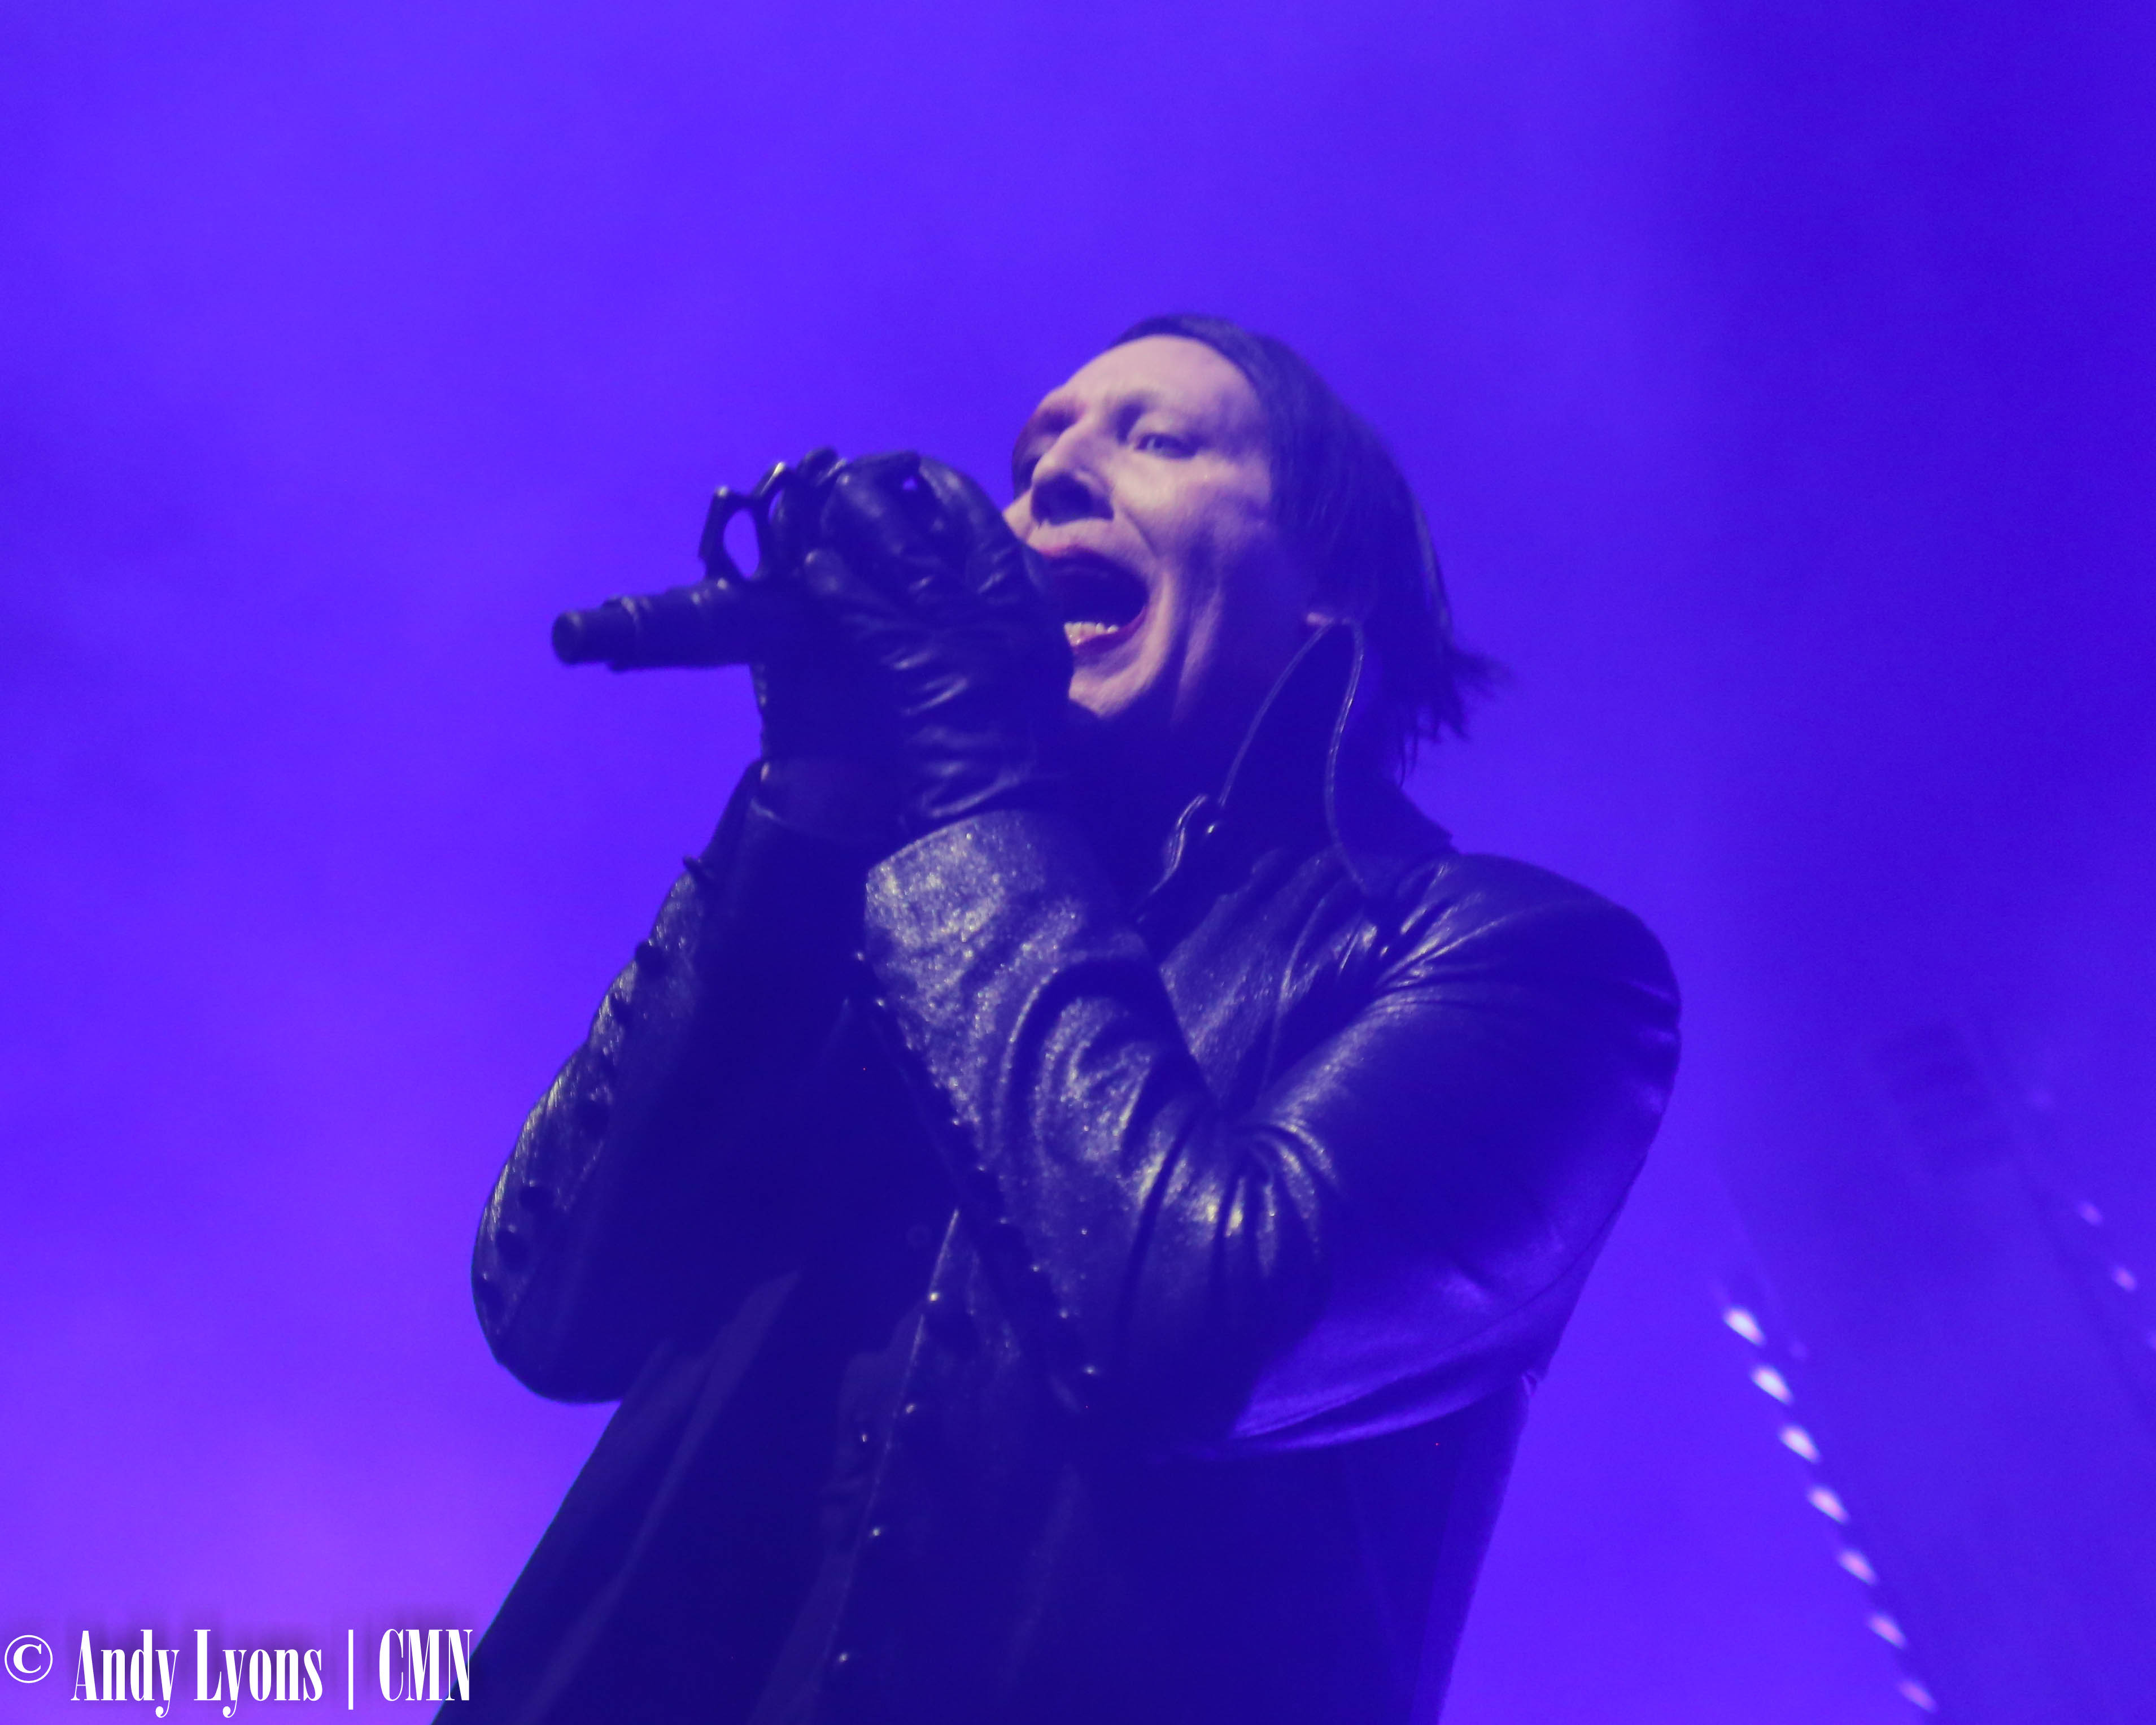 Marilyn Manson rocks a sold out Midland in KC make-up show